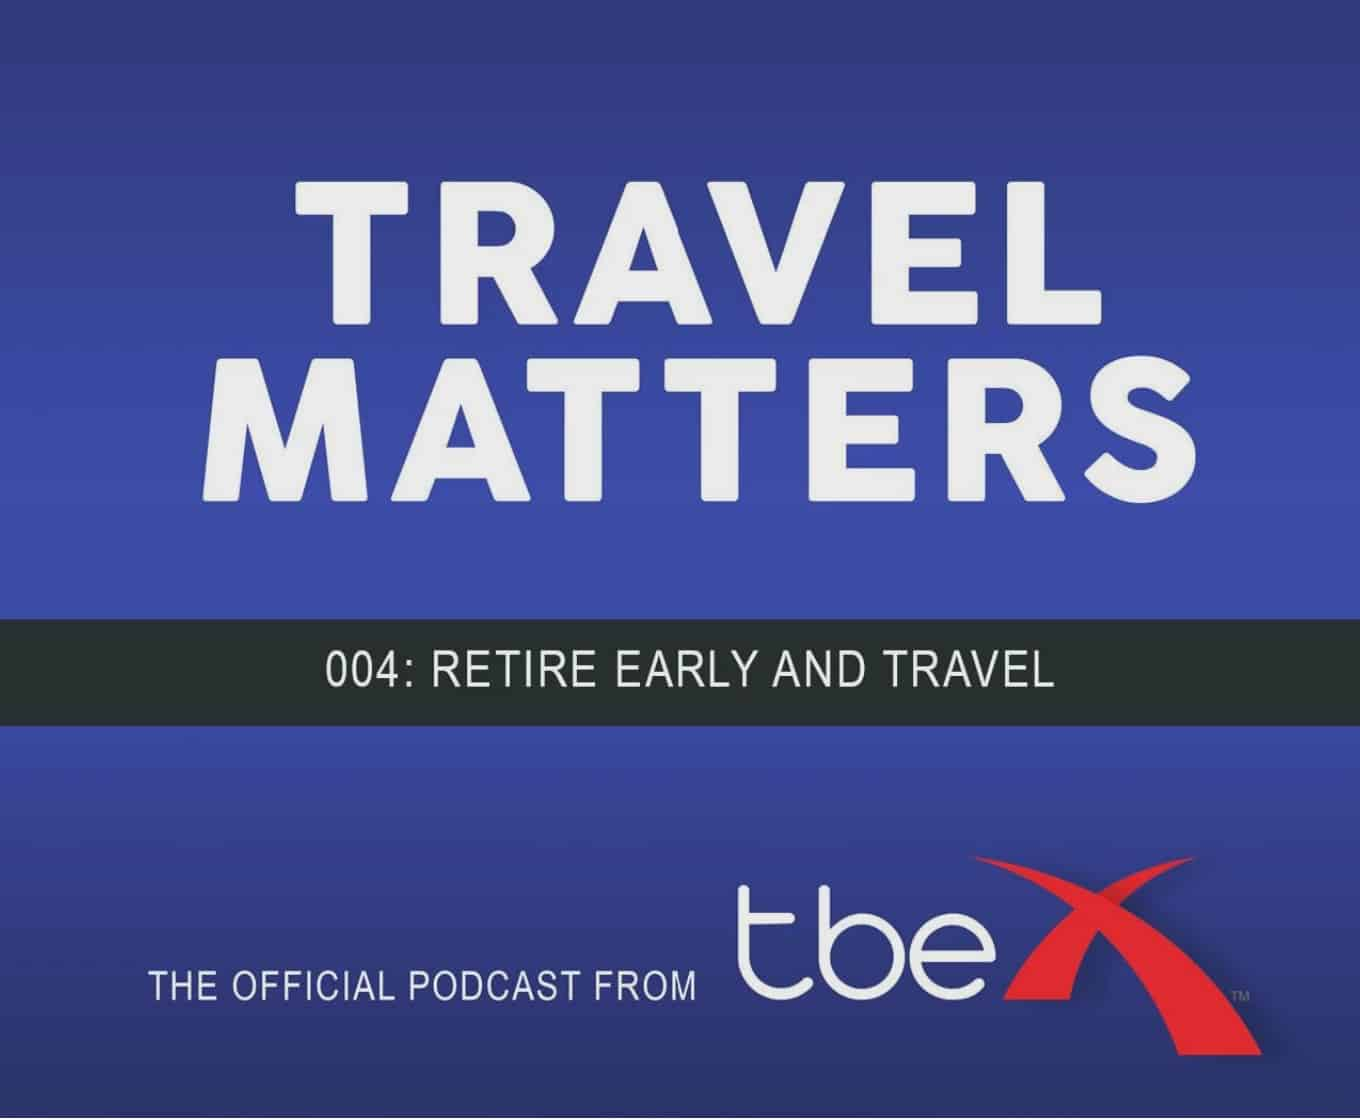 Travel Matters Podcast